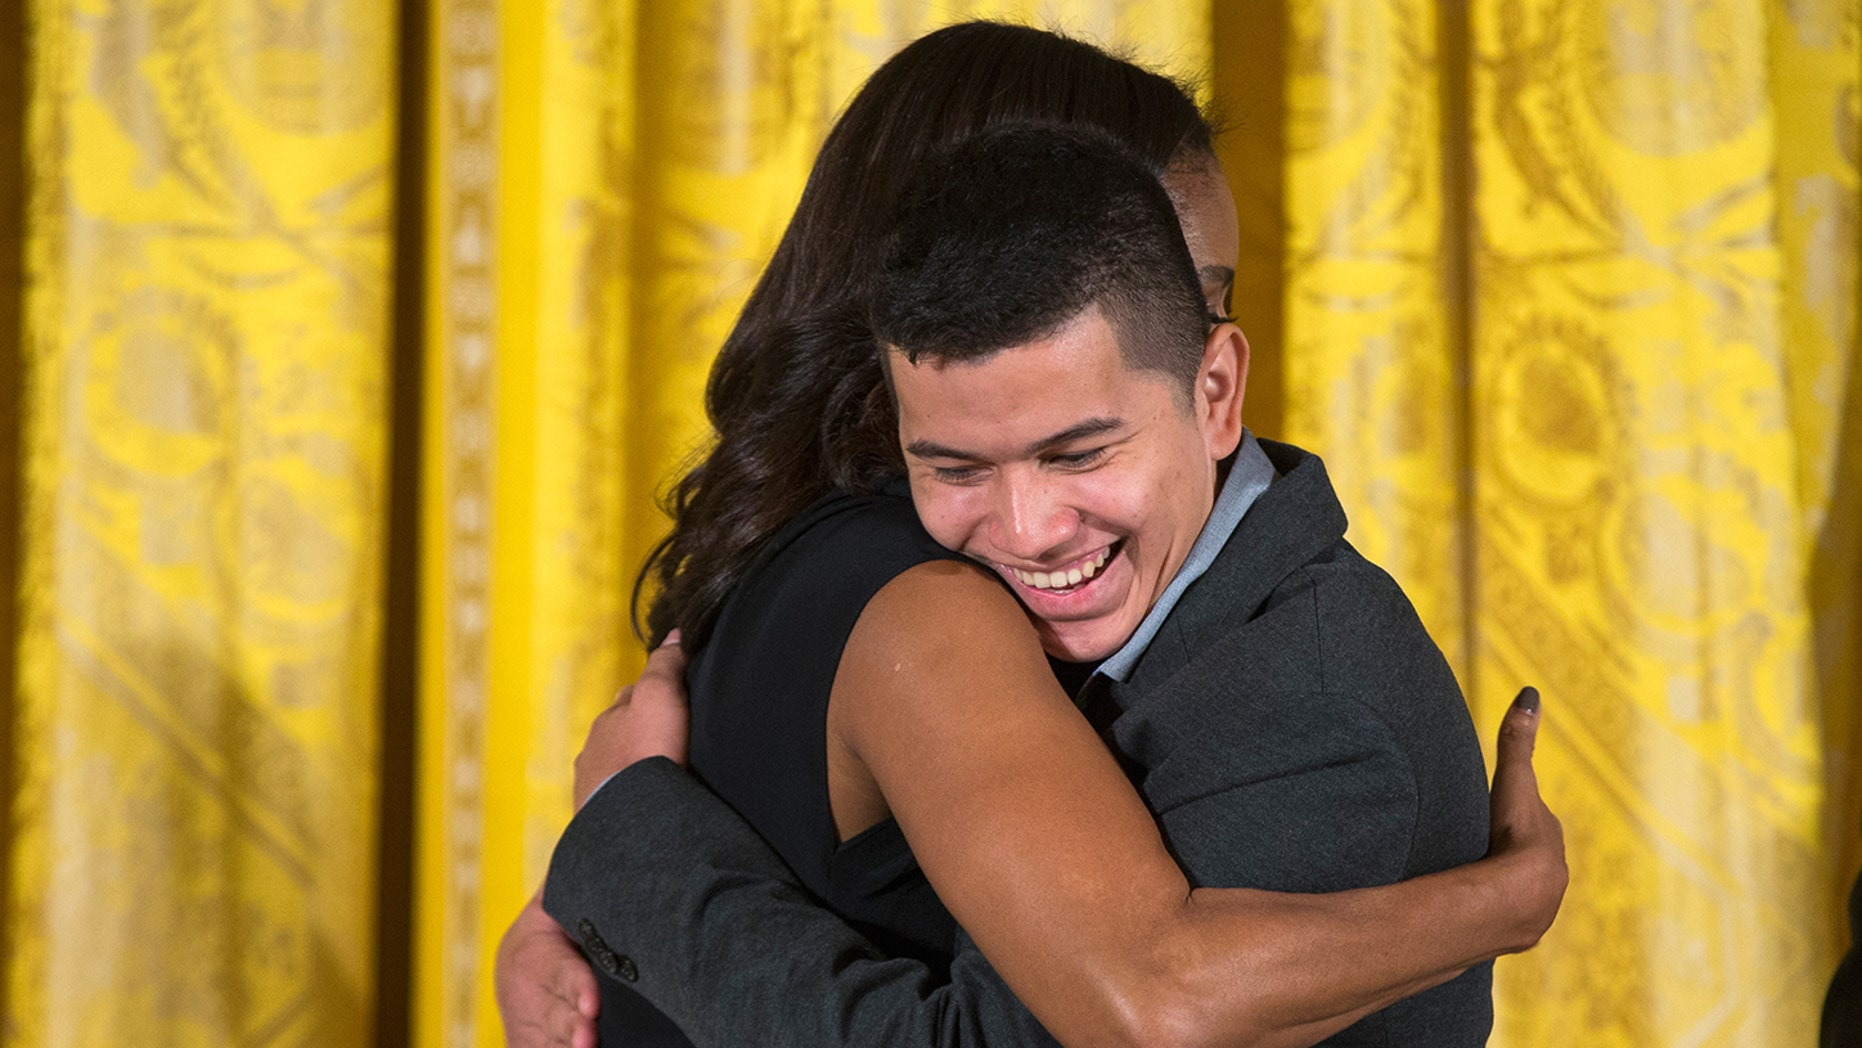 First lady Michelle Obama hugs Jefry Amaya of the Organization for Youth Empowerment in El Progreso, Honduras.